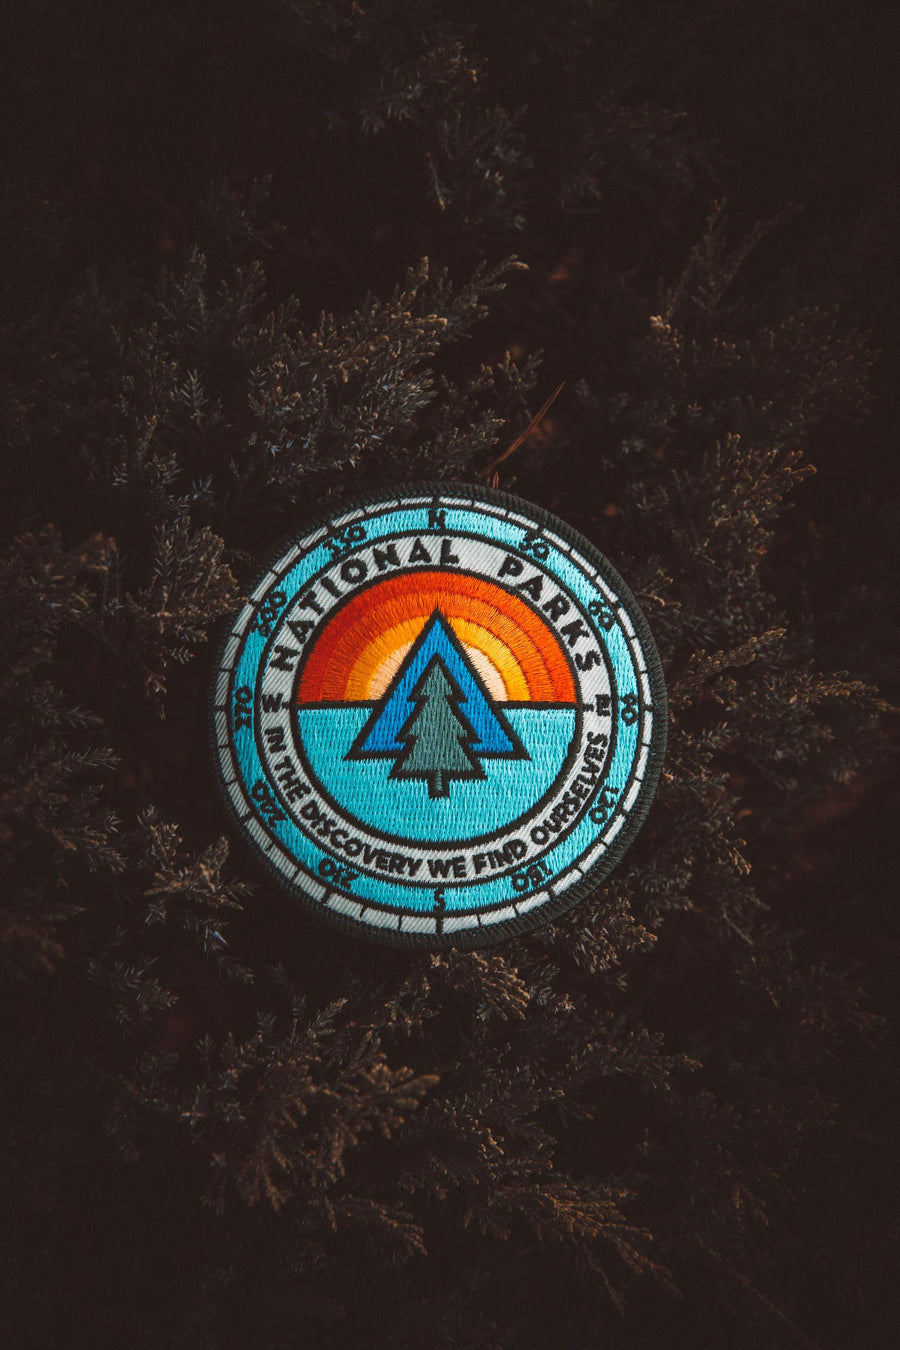 National Parks Sunrise Explorer's Patch - Wondery, A Parks Apparel Brand